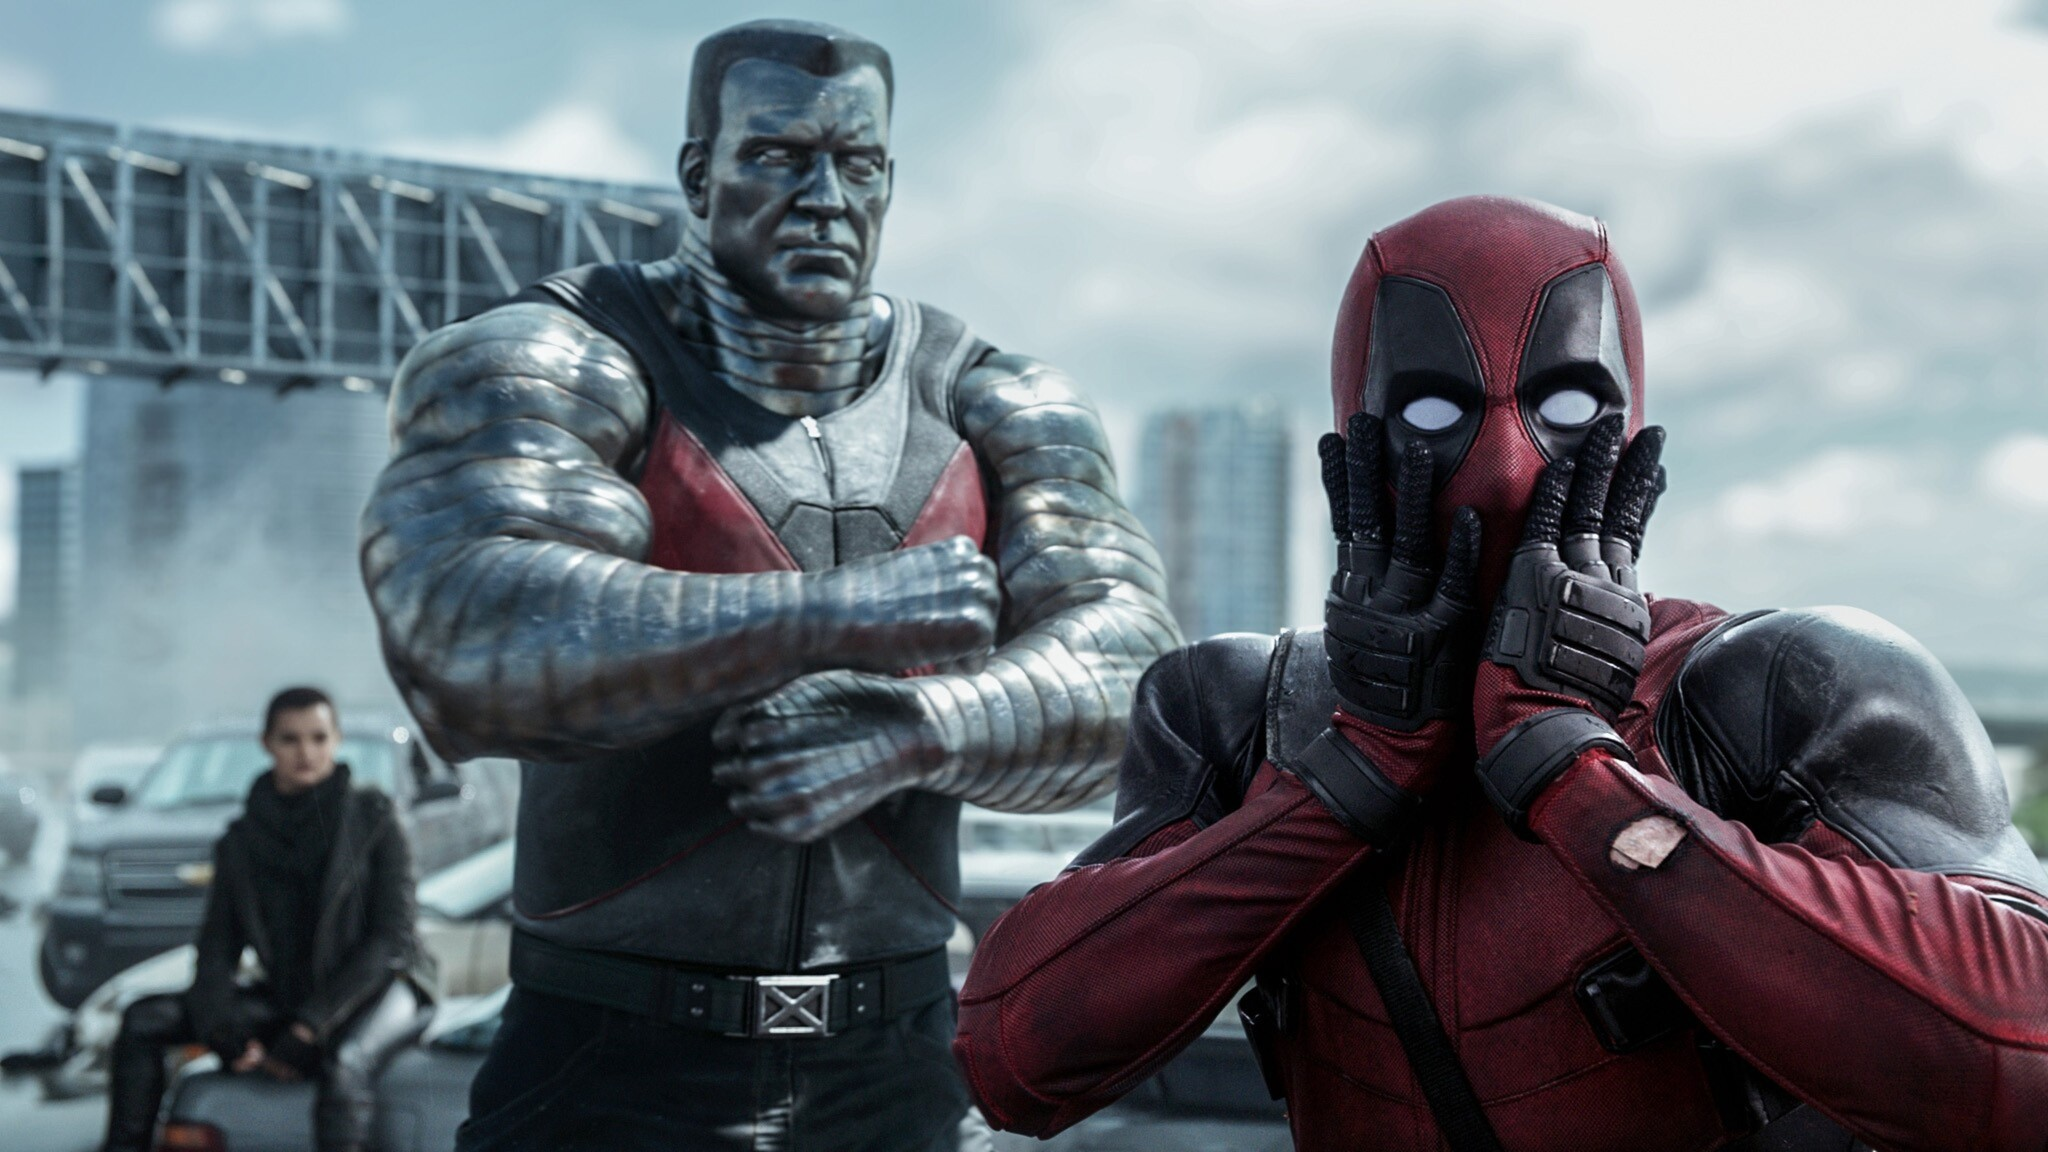 2048x1152 Deadpool 2048x1152 Resolution Hd 4k Wallpapers Images